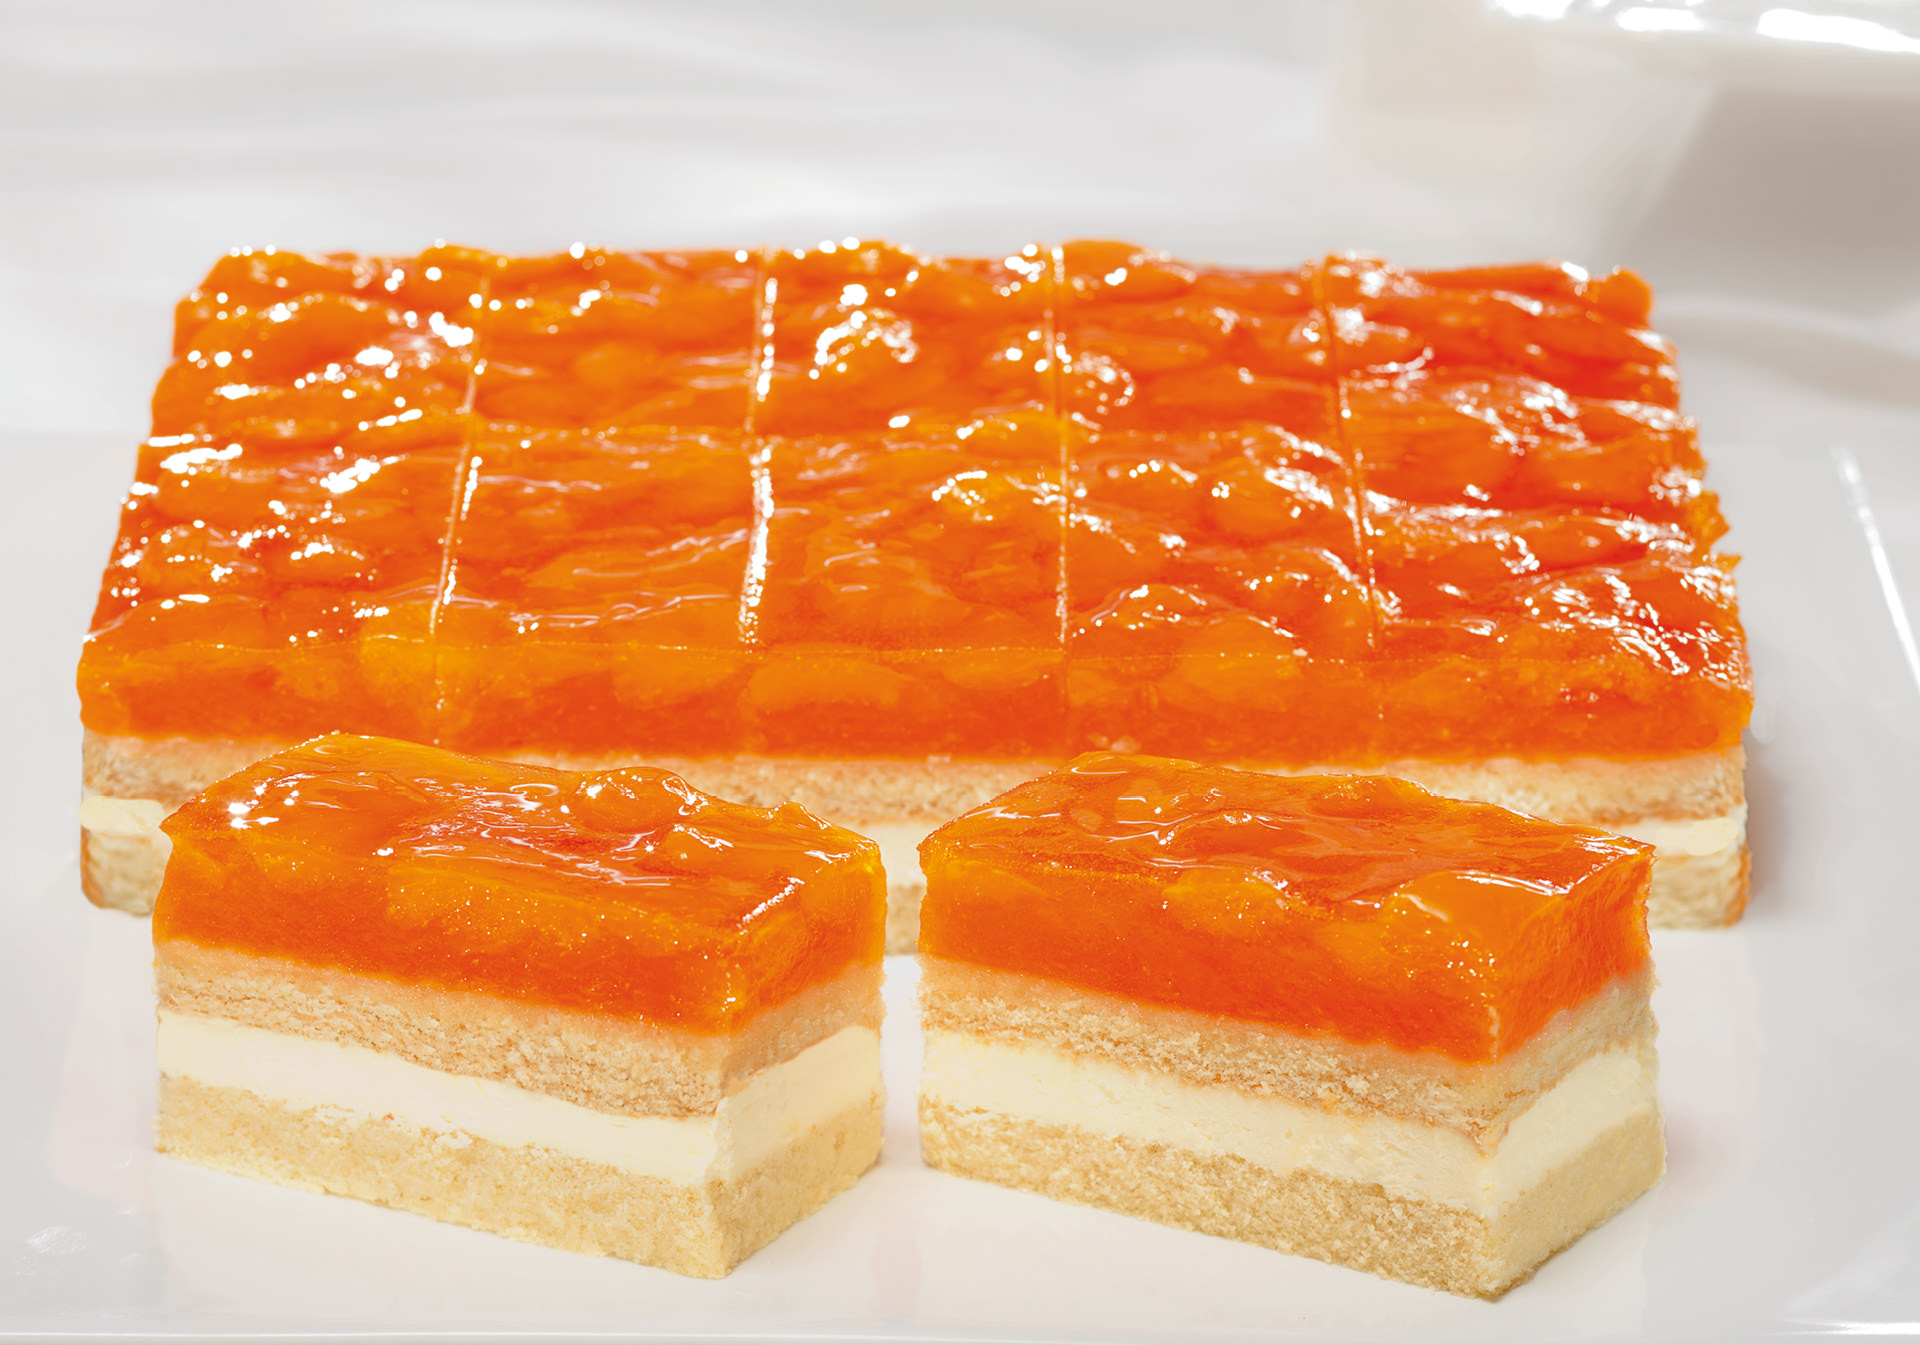 Tangerine cream slice